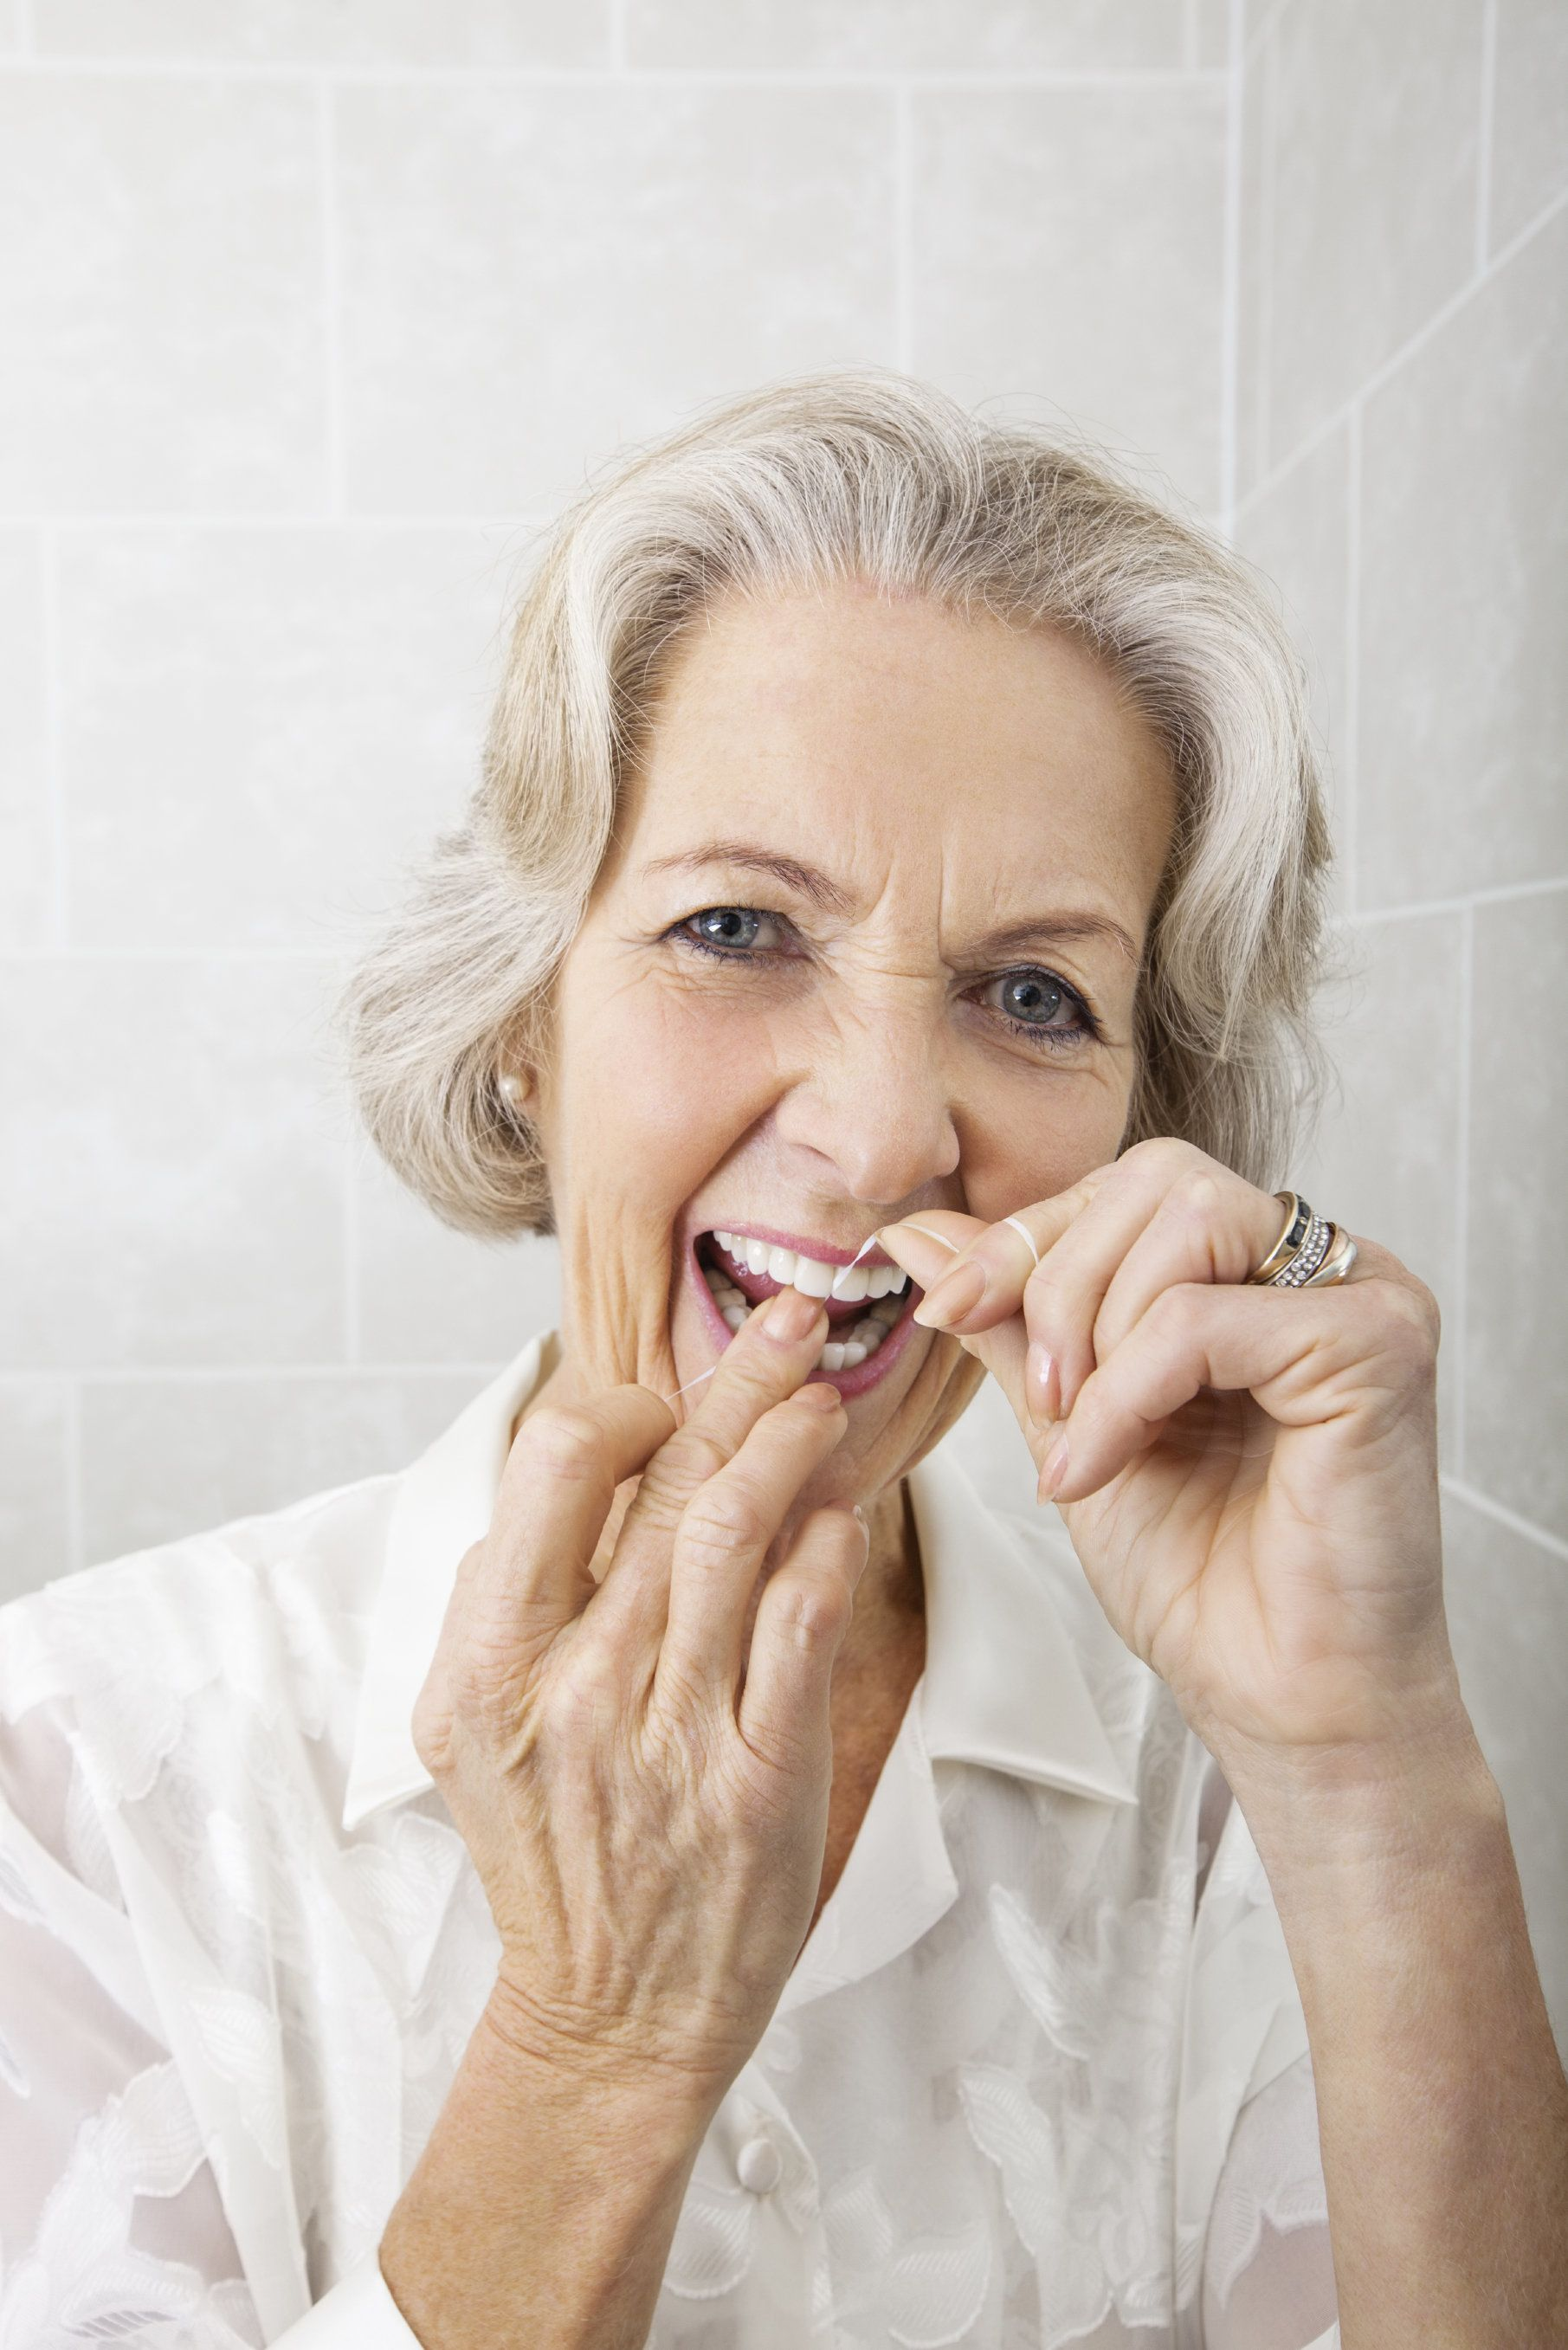 A senior patient flossing to maintain good gum health